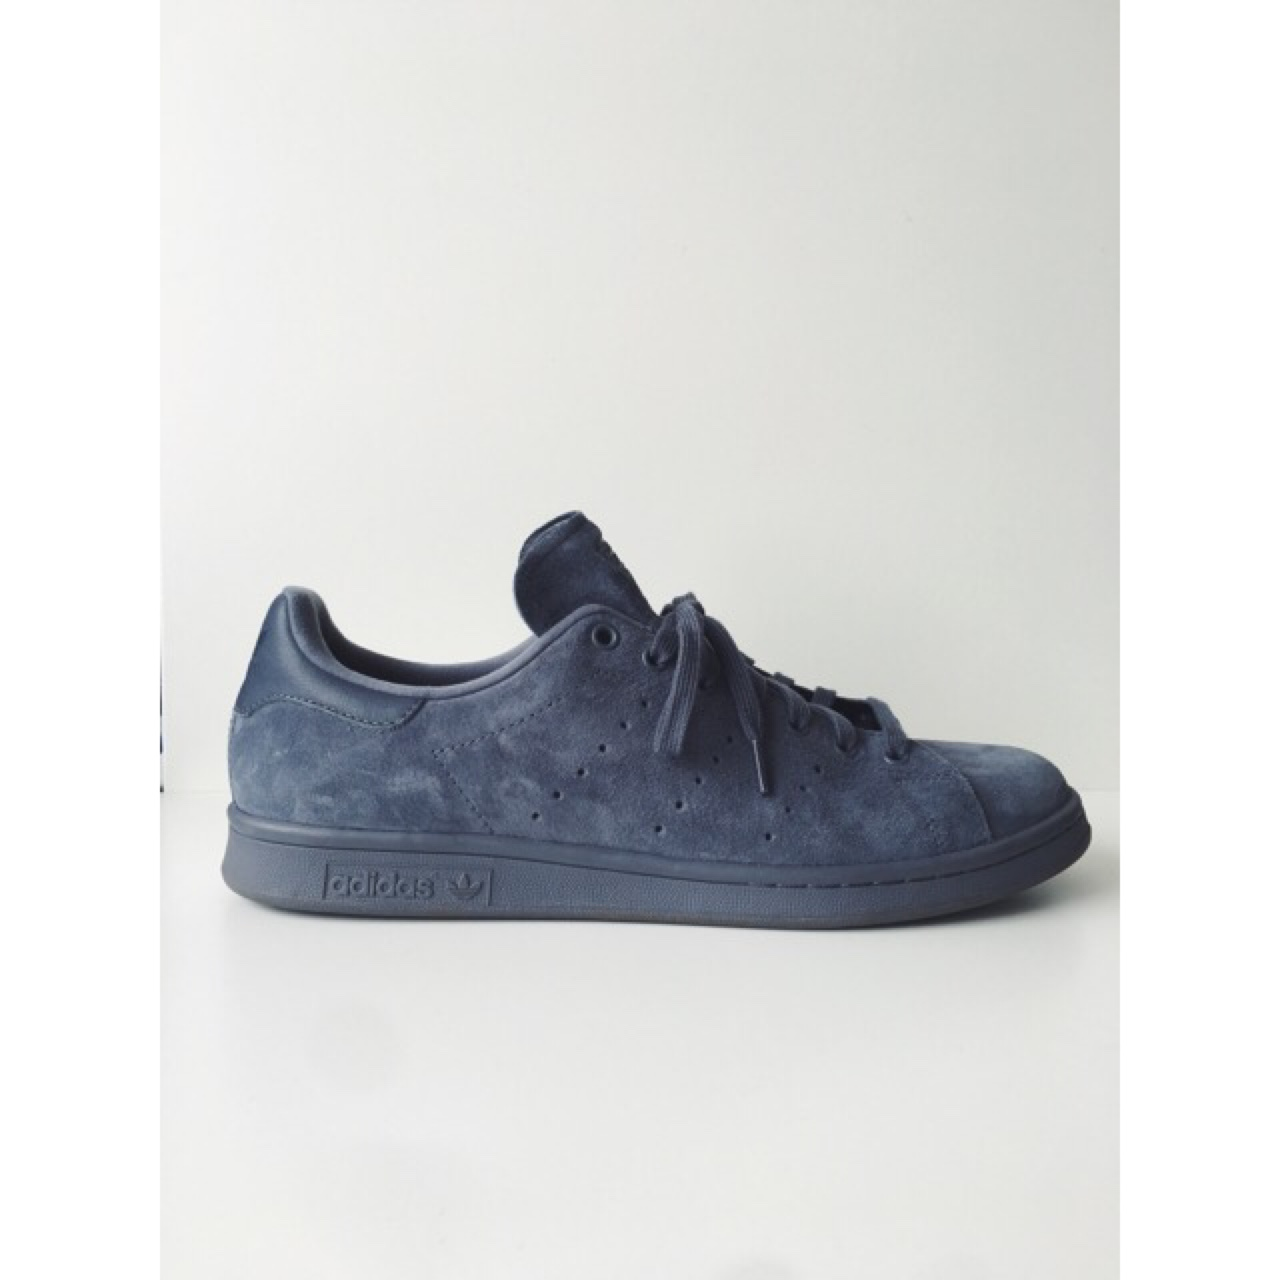 new style 0295e 2577c Mens Adidas Stan Smith size 12 - grey suede edition,... - Depop